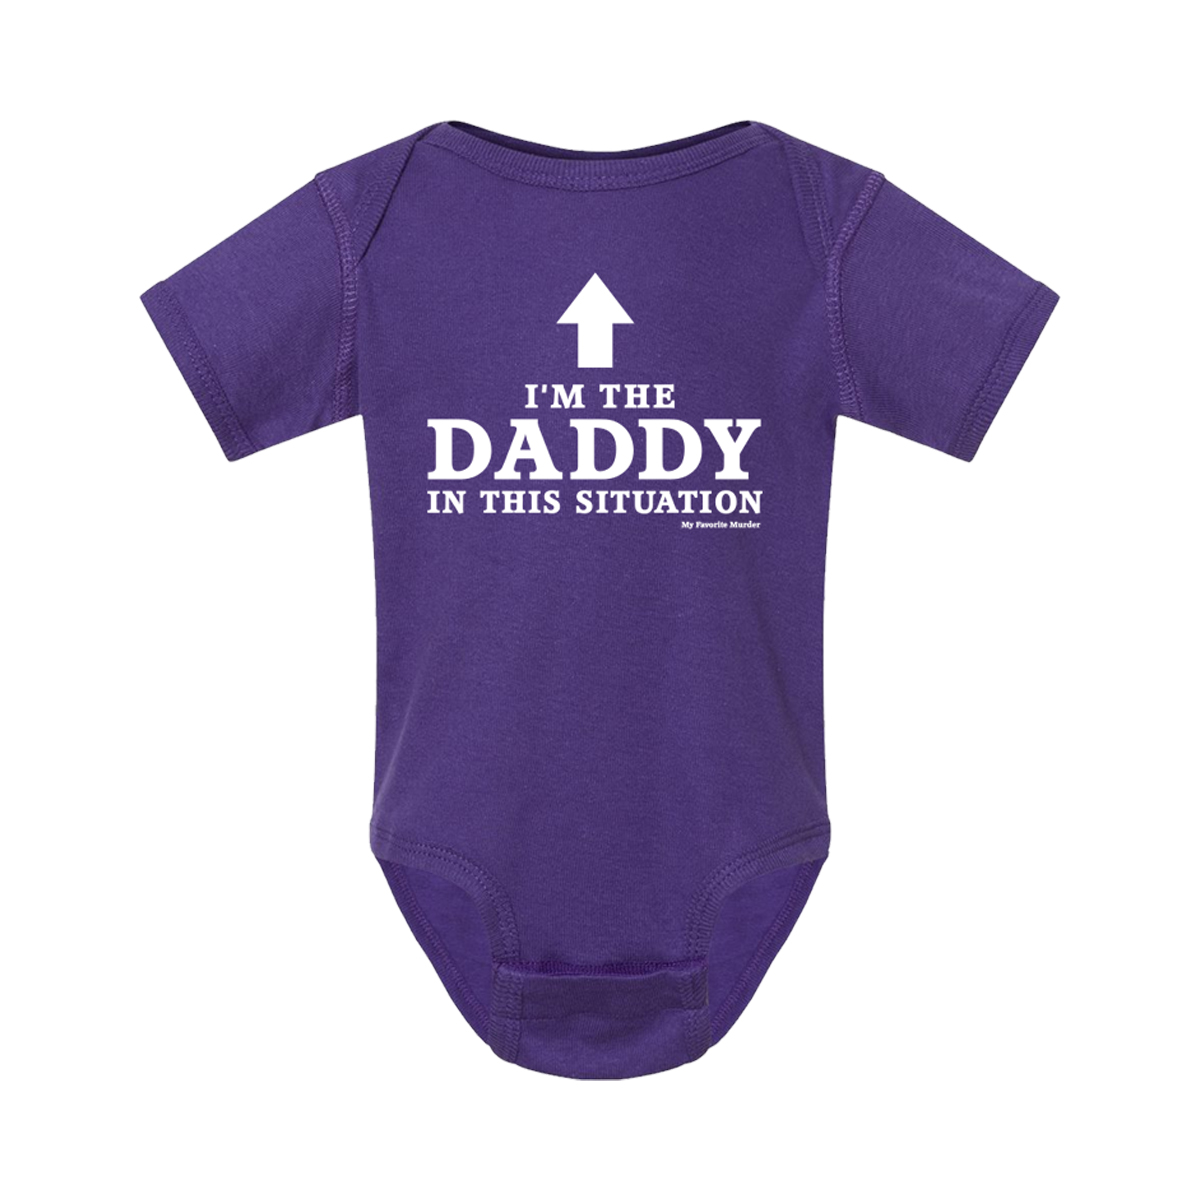 I'm the Daddy Onesie